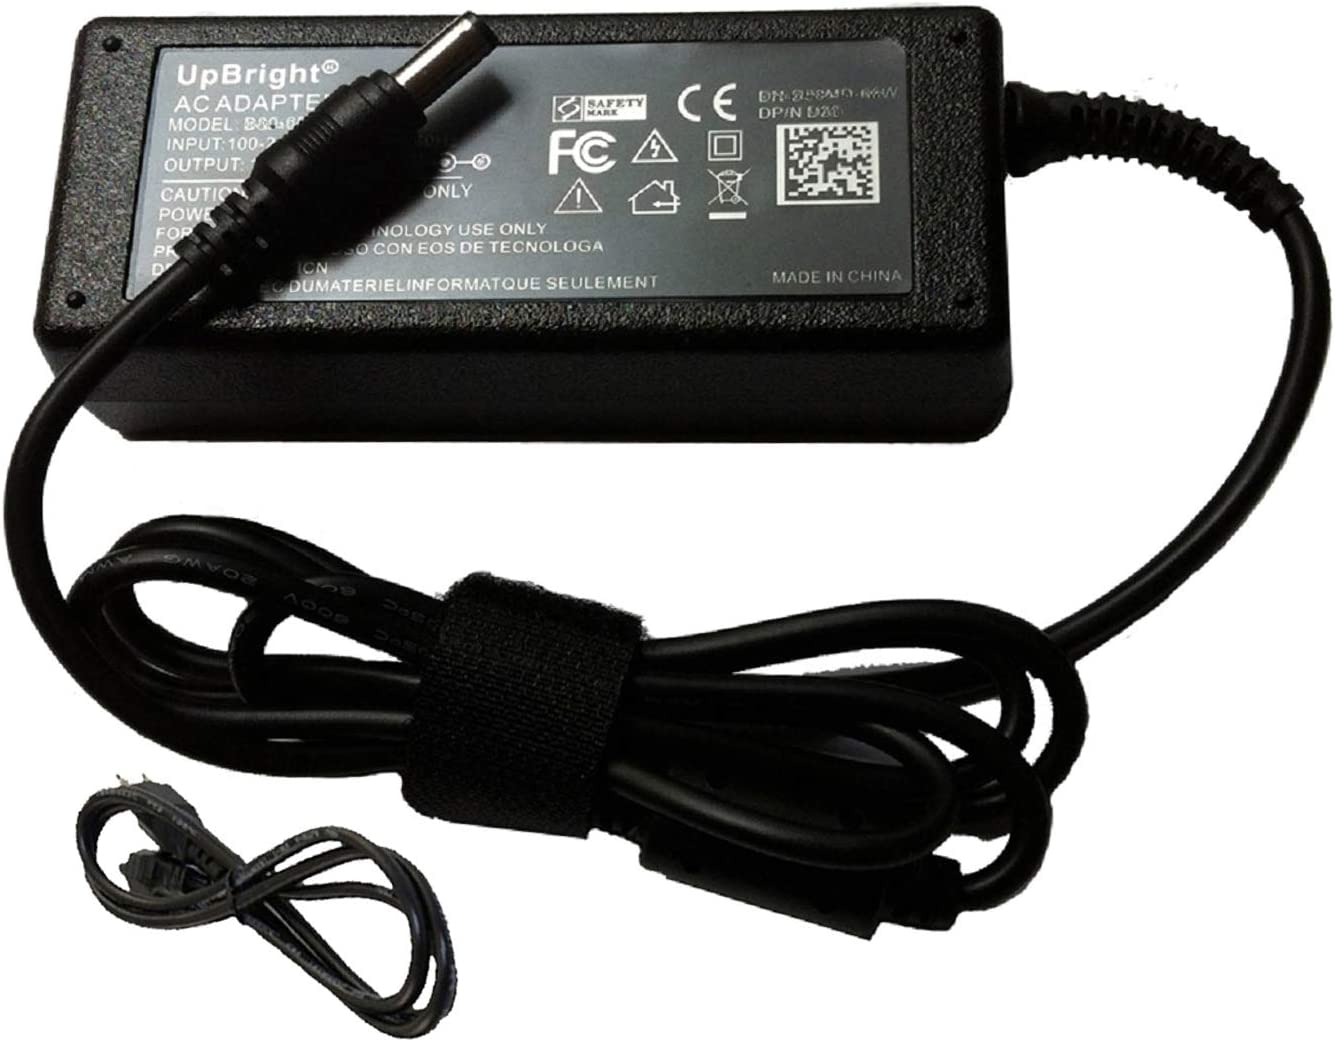 UpBright New AC/DC Adapter Replacement for Samsung SLPS-601FCOT SLPS-601FC0T DJ44-00003B Fits PowerBot R9000 VR9000 Series R9010 R9020 R9040 R9050 R9051 R9250 R9350 Turbo Robot Vacuum Battery Charger